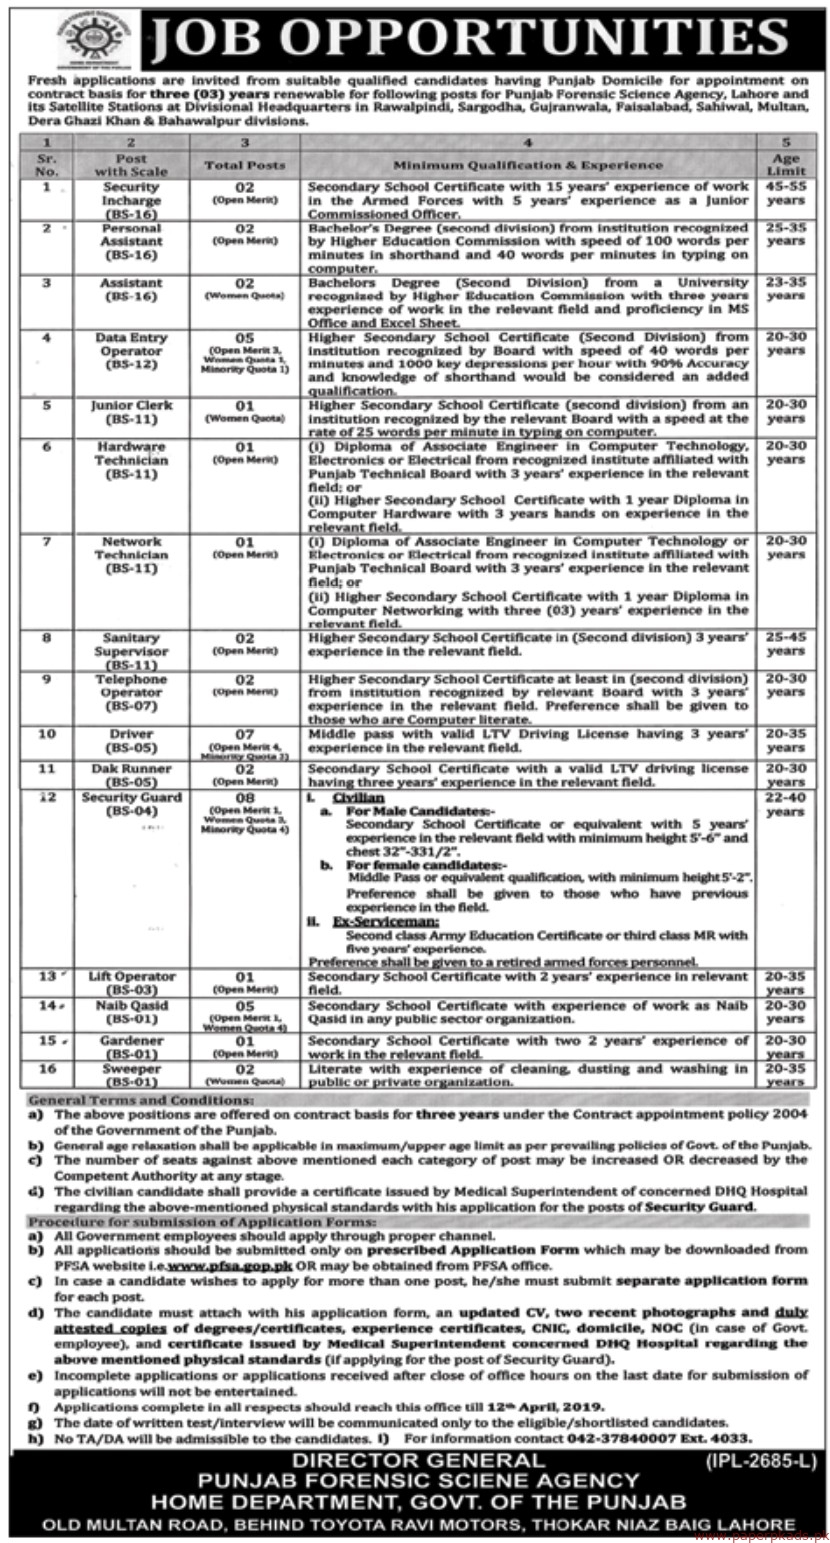 Punjab Forensic Science Agency Jobs 2019 Latest